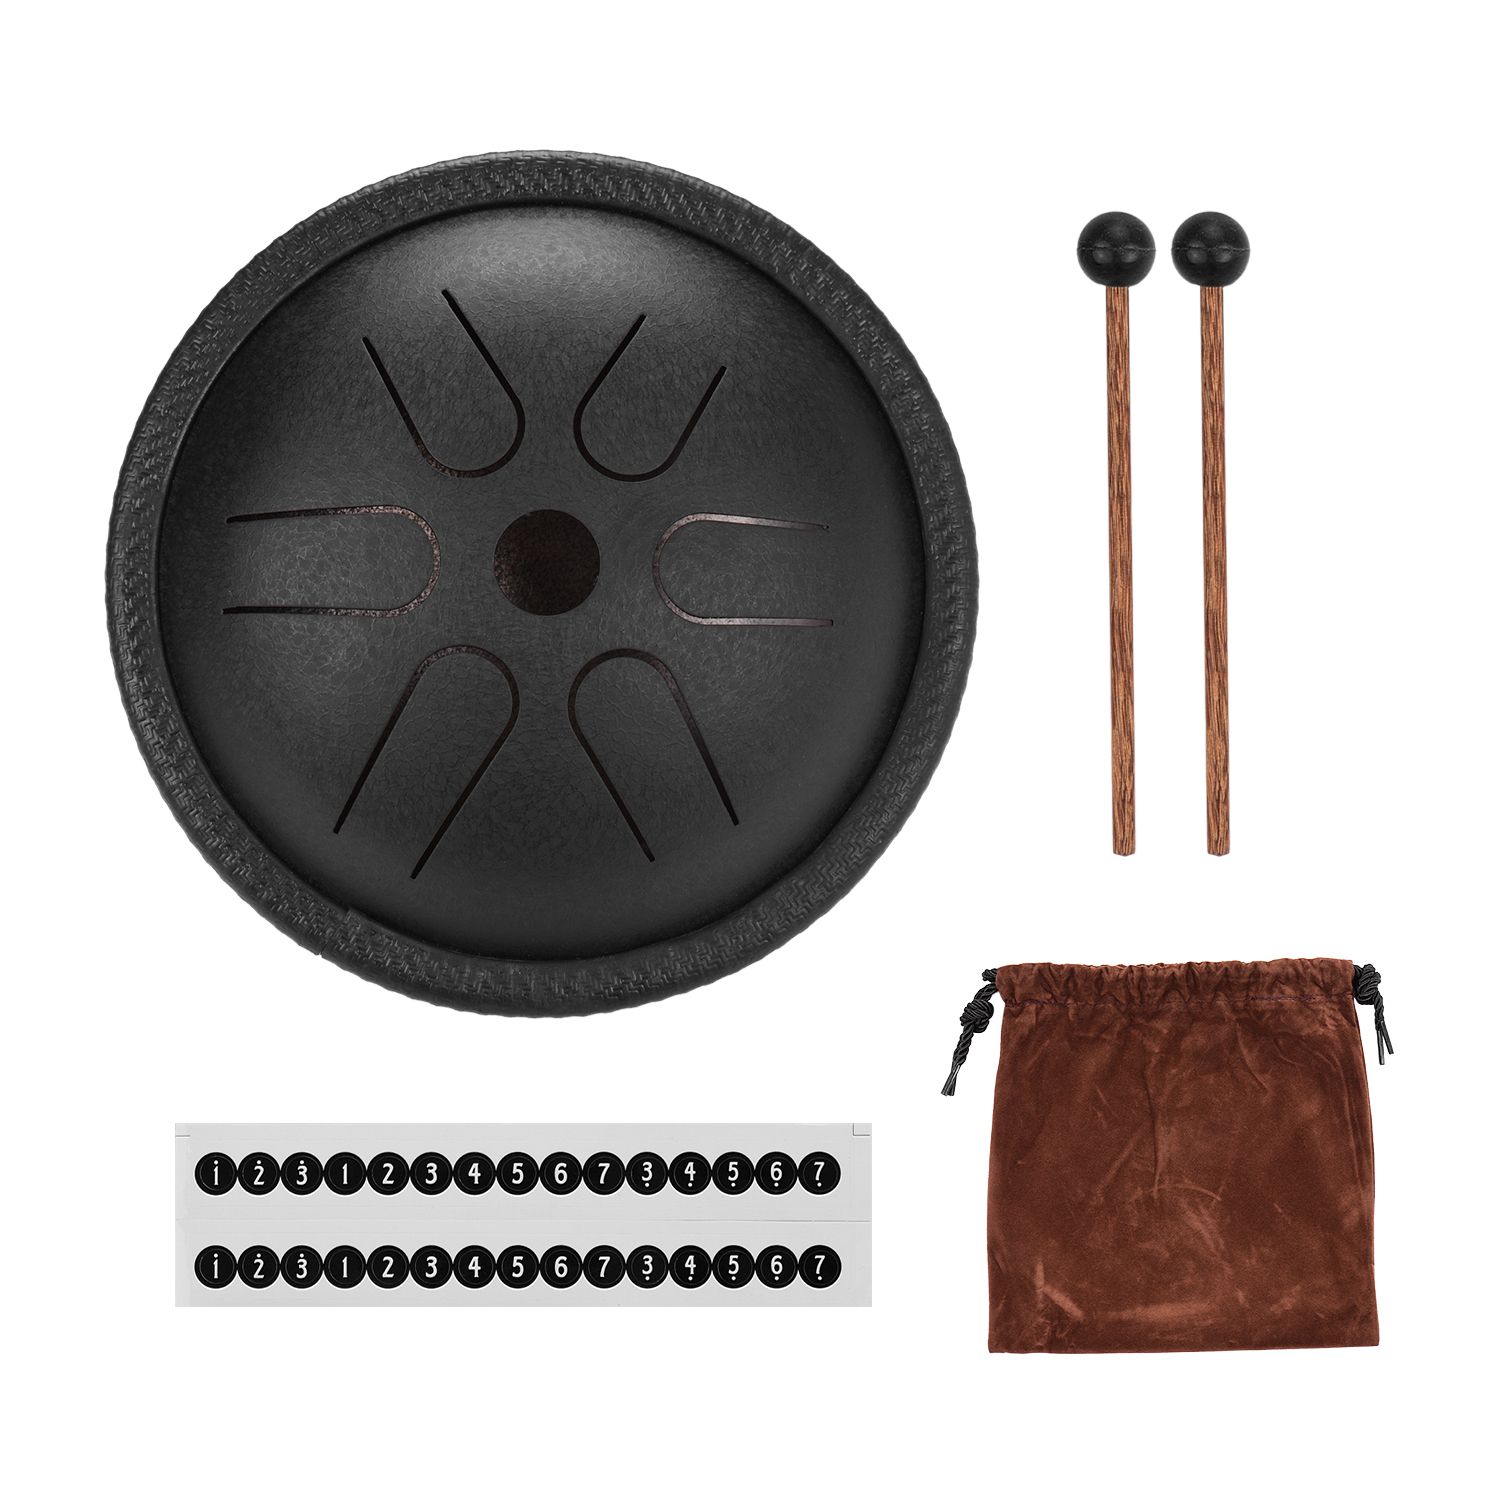 5.5 Inch Mini Steel Tongue Drum 6 Notes Handpan Drum Steel Pocket Drum Percussion Instrument with Mallets Carry Bag for Yoga